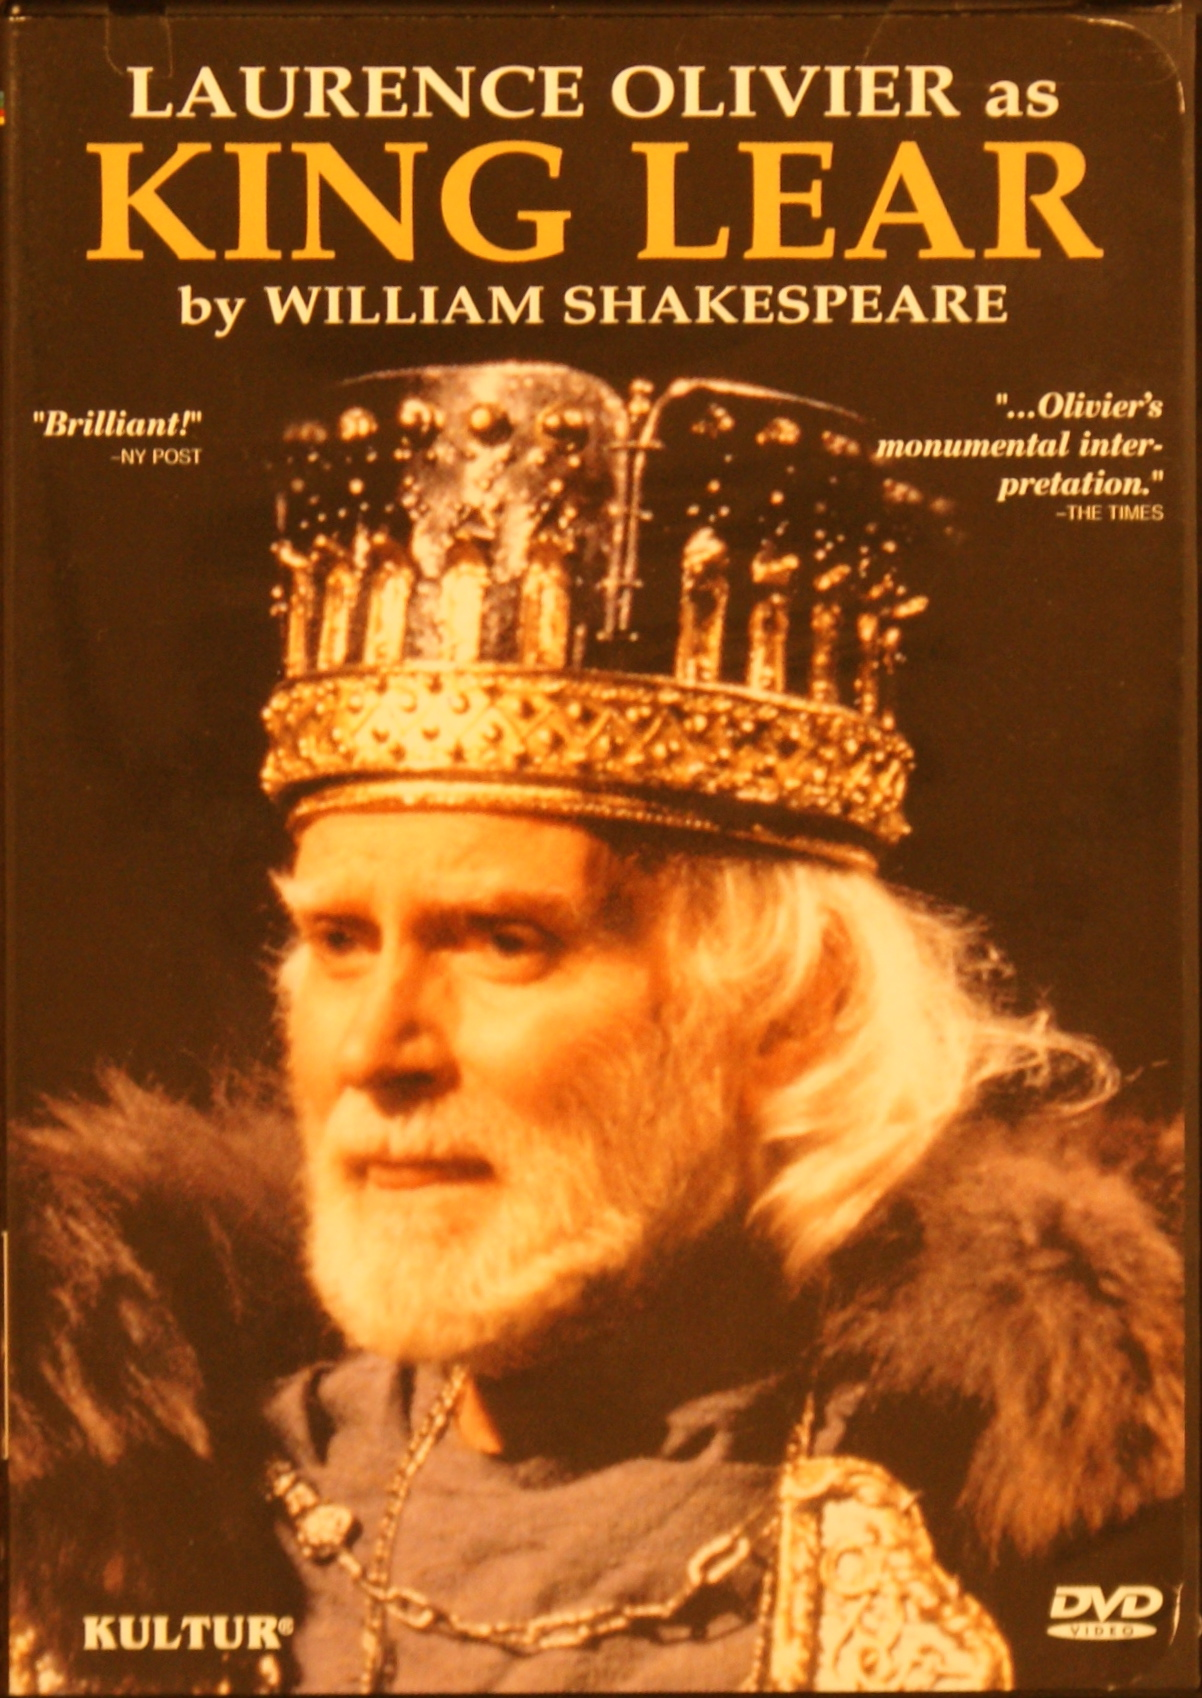 the use of image collections in shakespeares king lear